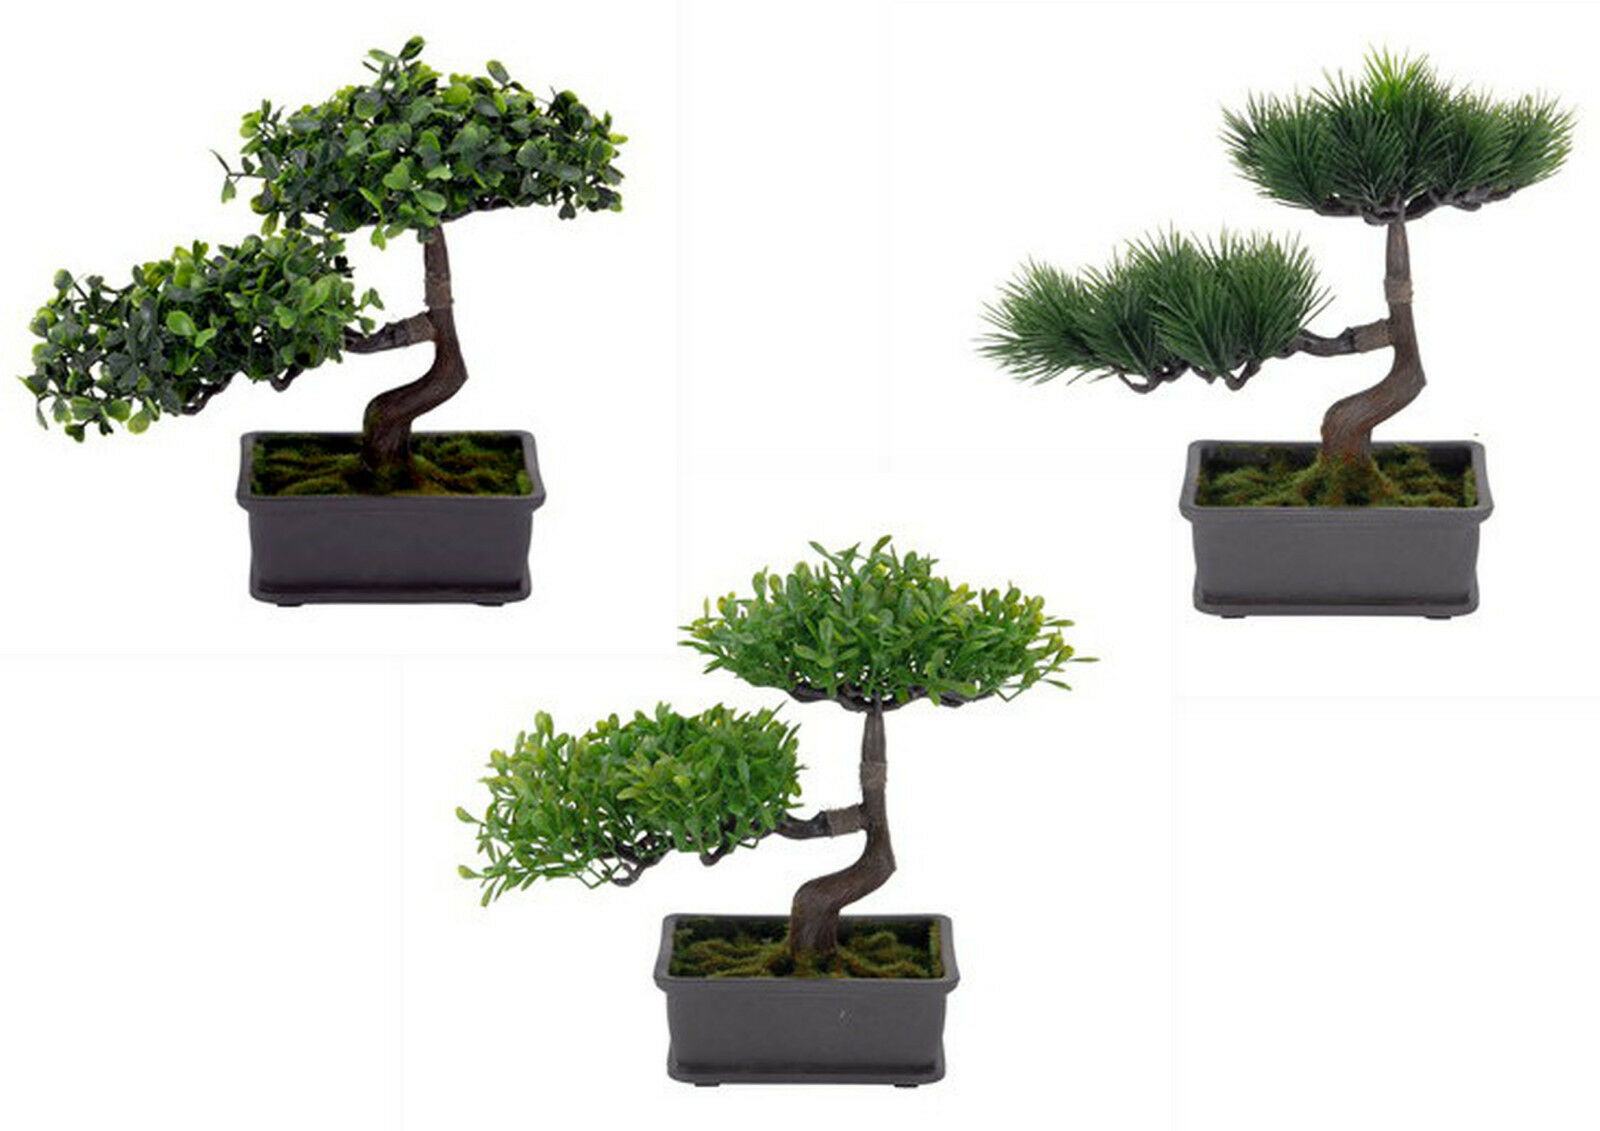 bonsai im topf kunstblume kunstpflanze lebensbaum bonsai. Black Bedroom Furniture Sets. Home Design Ideas